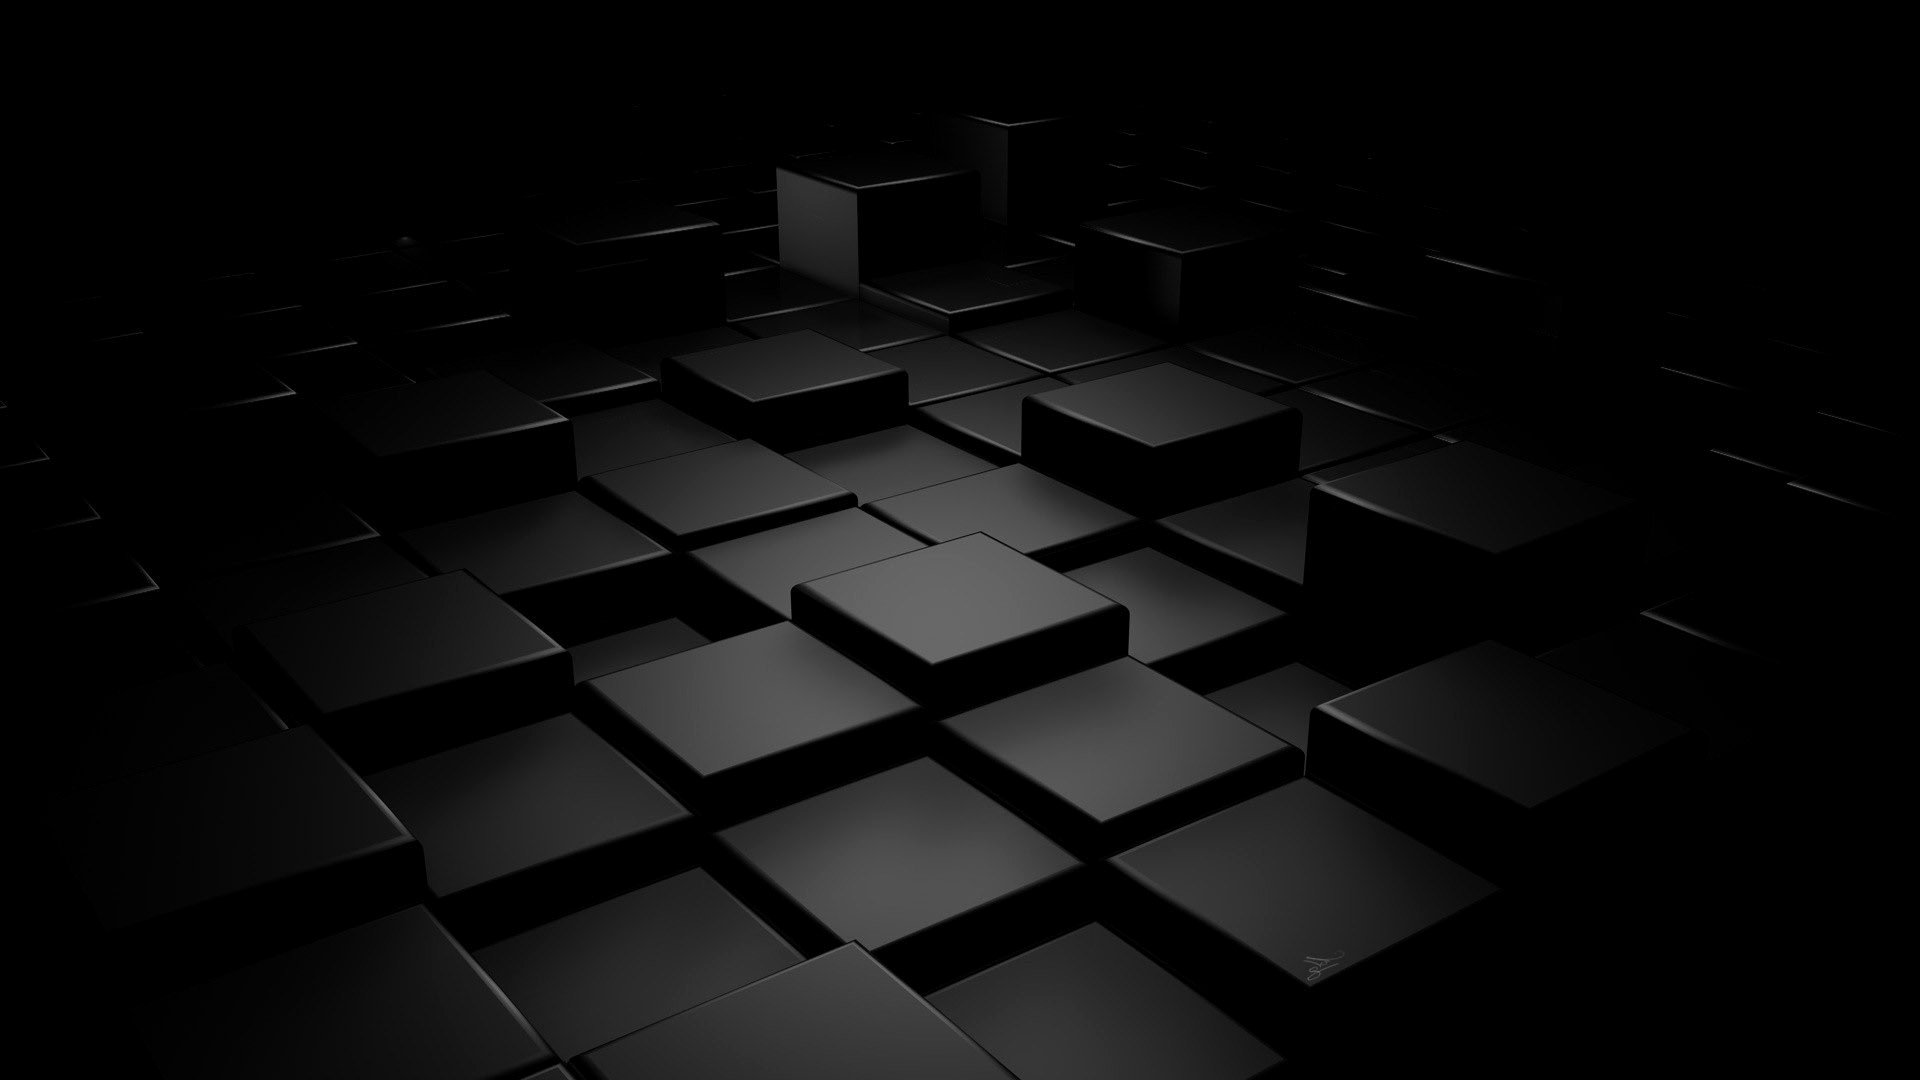 Black and White Abstract Pictures Fresh Black Abstract Wallpapers S Backgrounds